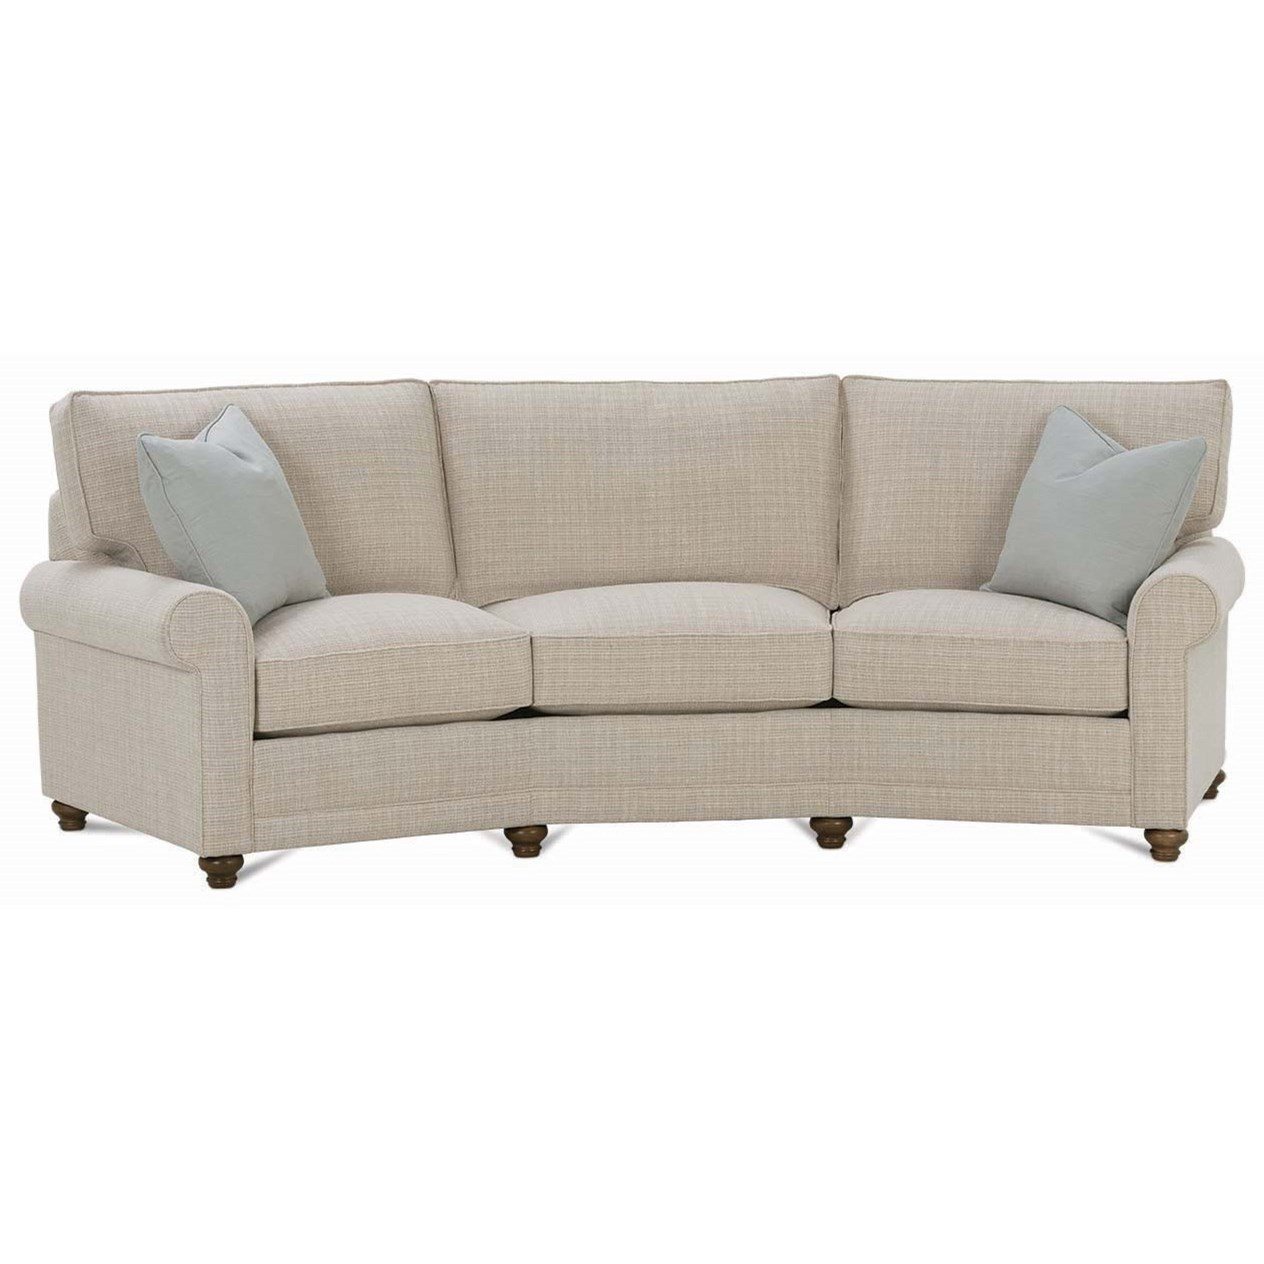 My Style I Customizable Conversation Sofa by Rowe at Steger's Furniture